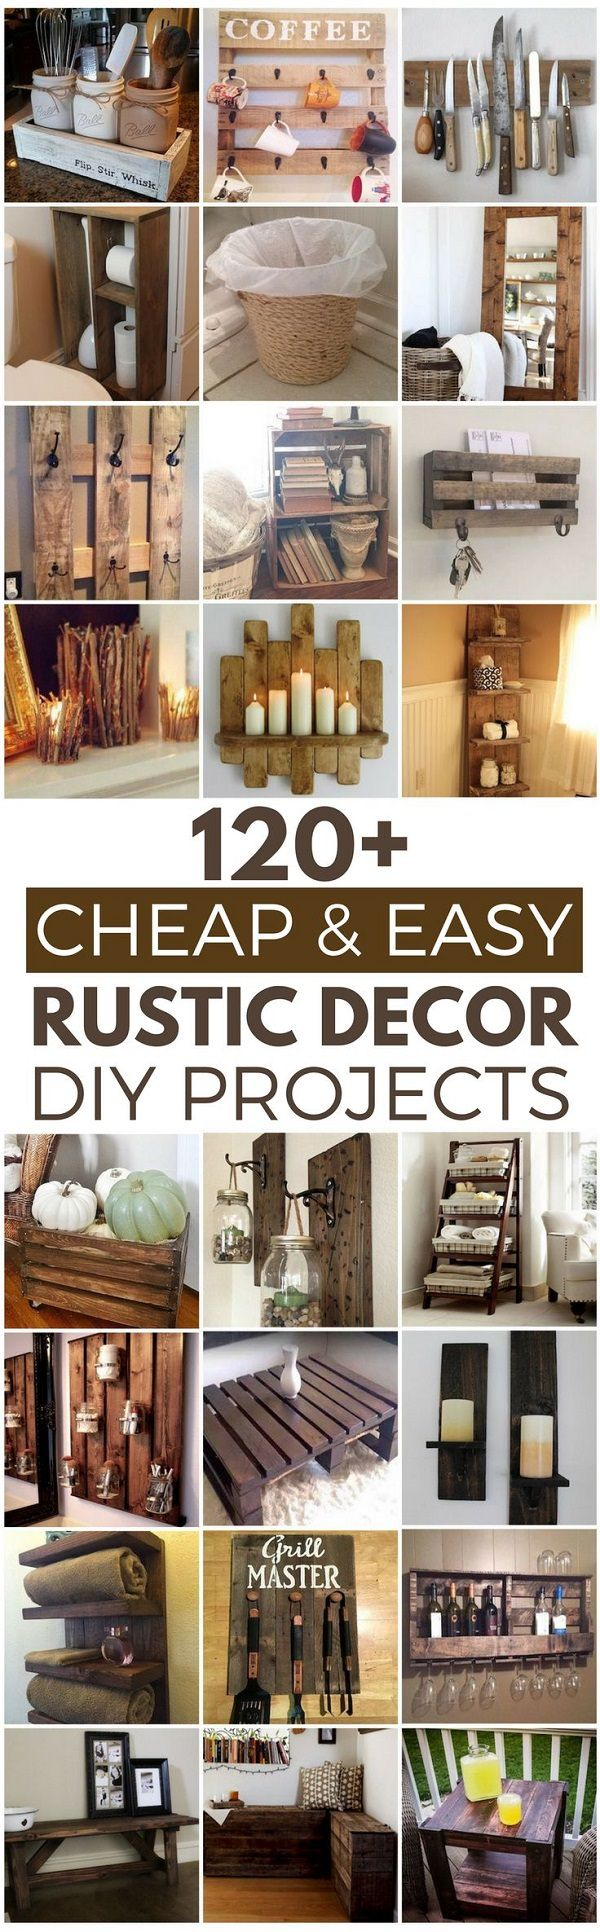 Home Decor On A Budget diy hammock chair diy home decor ideas on a budget easy and creative decor ideas click for tutorial 120 Cheap And Easy Diy Rustic Home Decor Ideas